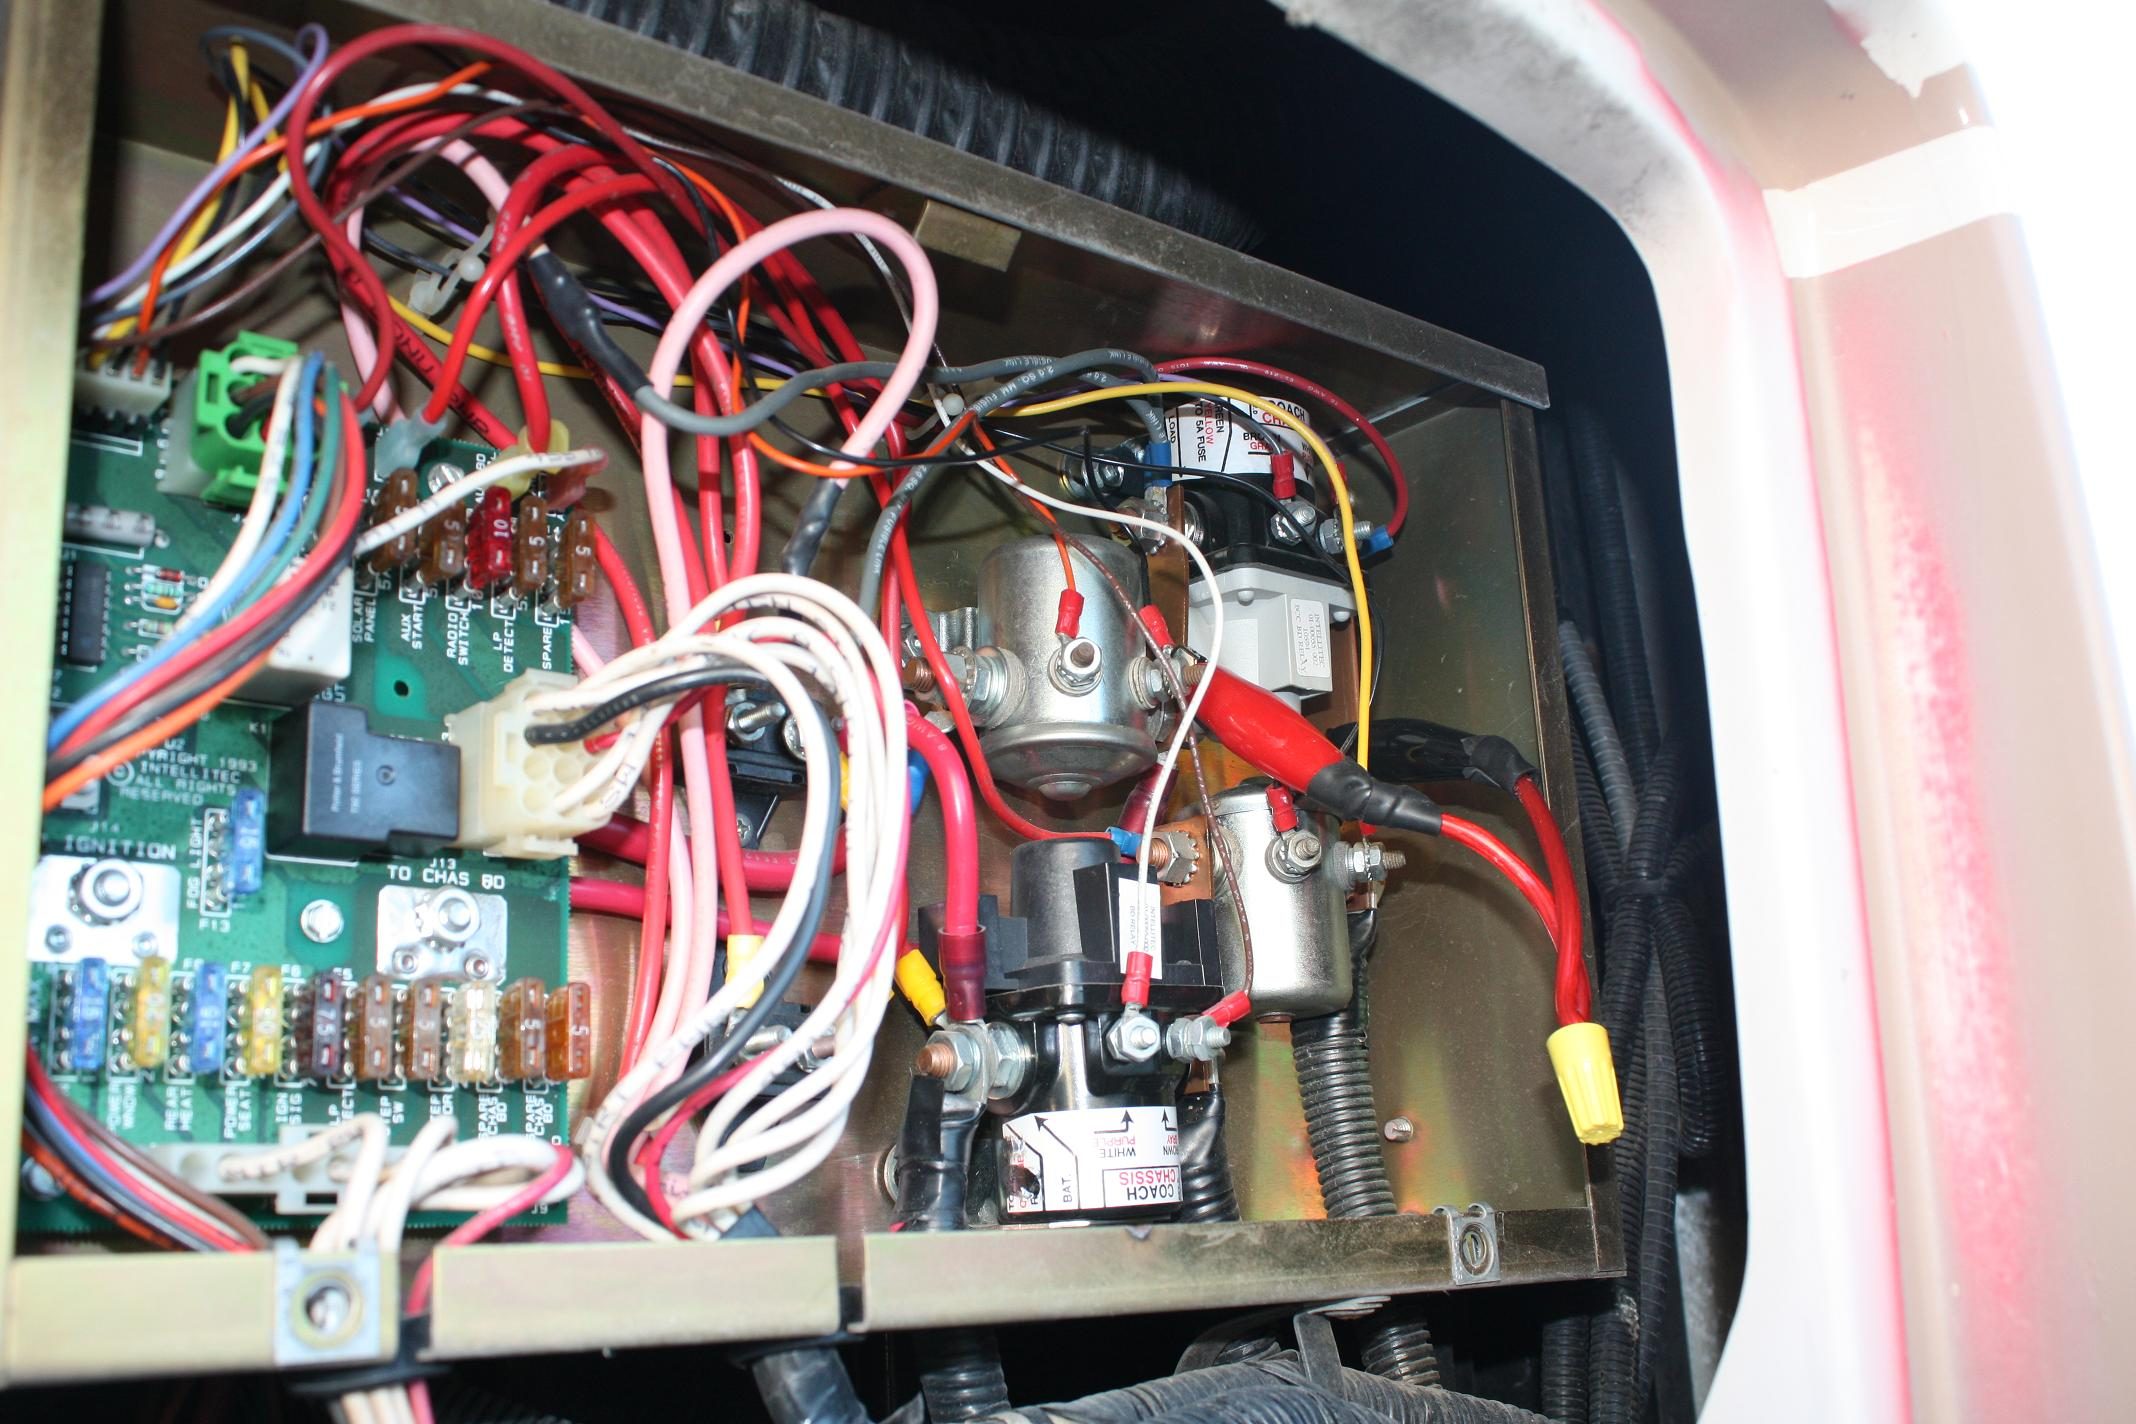 No power to chassis - Need wiring diagrams for 1989 Pace Arrow P30 | Battery Control Center Wiring Diagram |  | Classic Winnebagos and Vintage RVs!